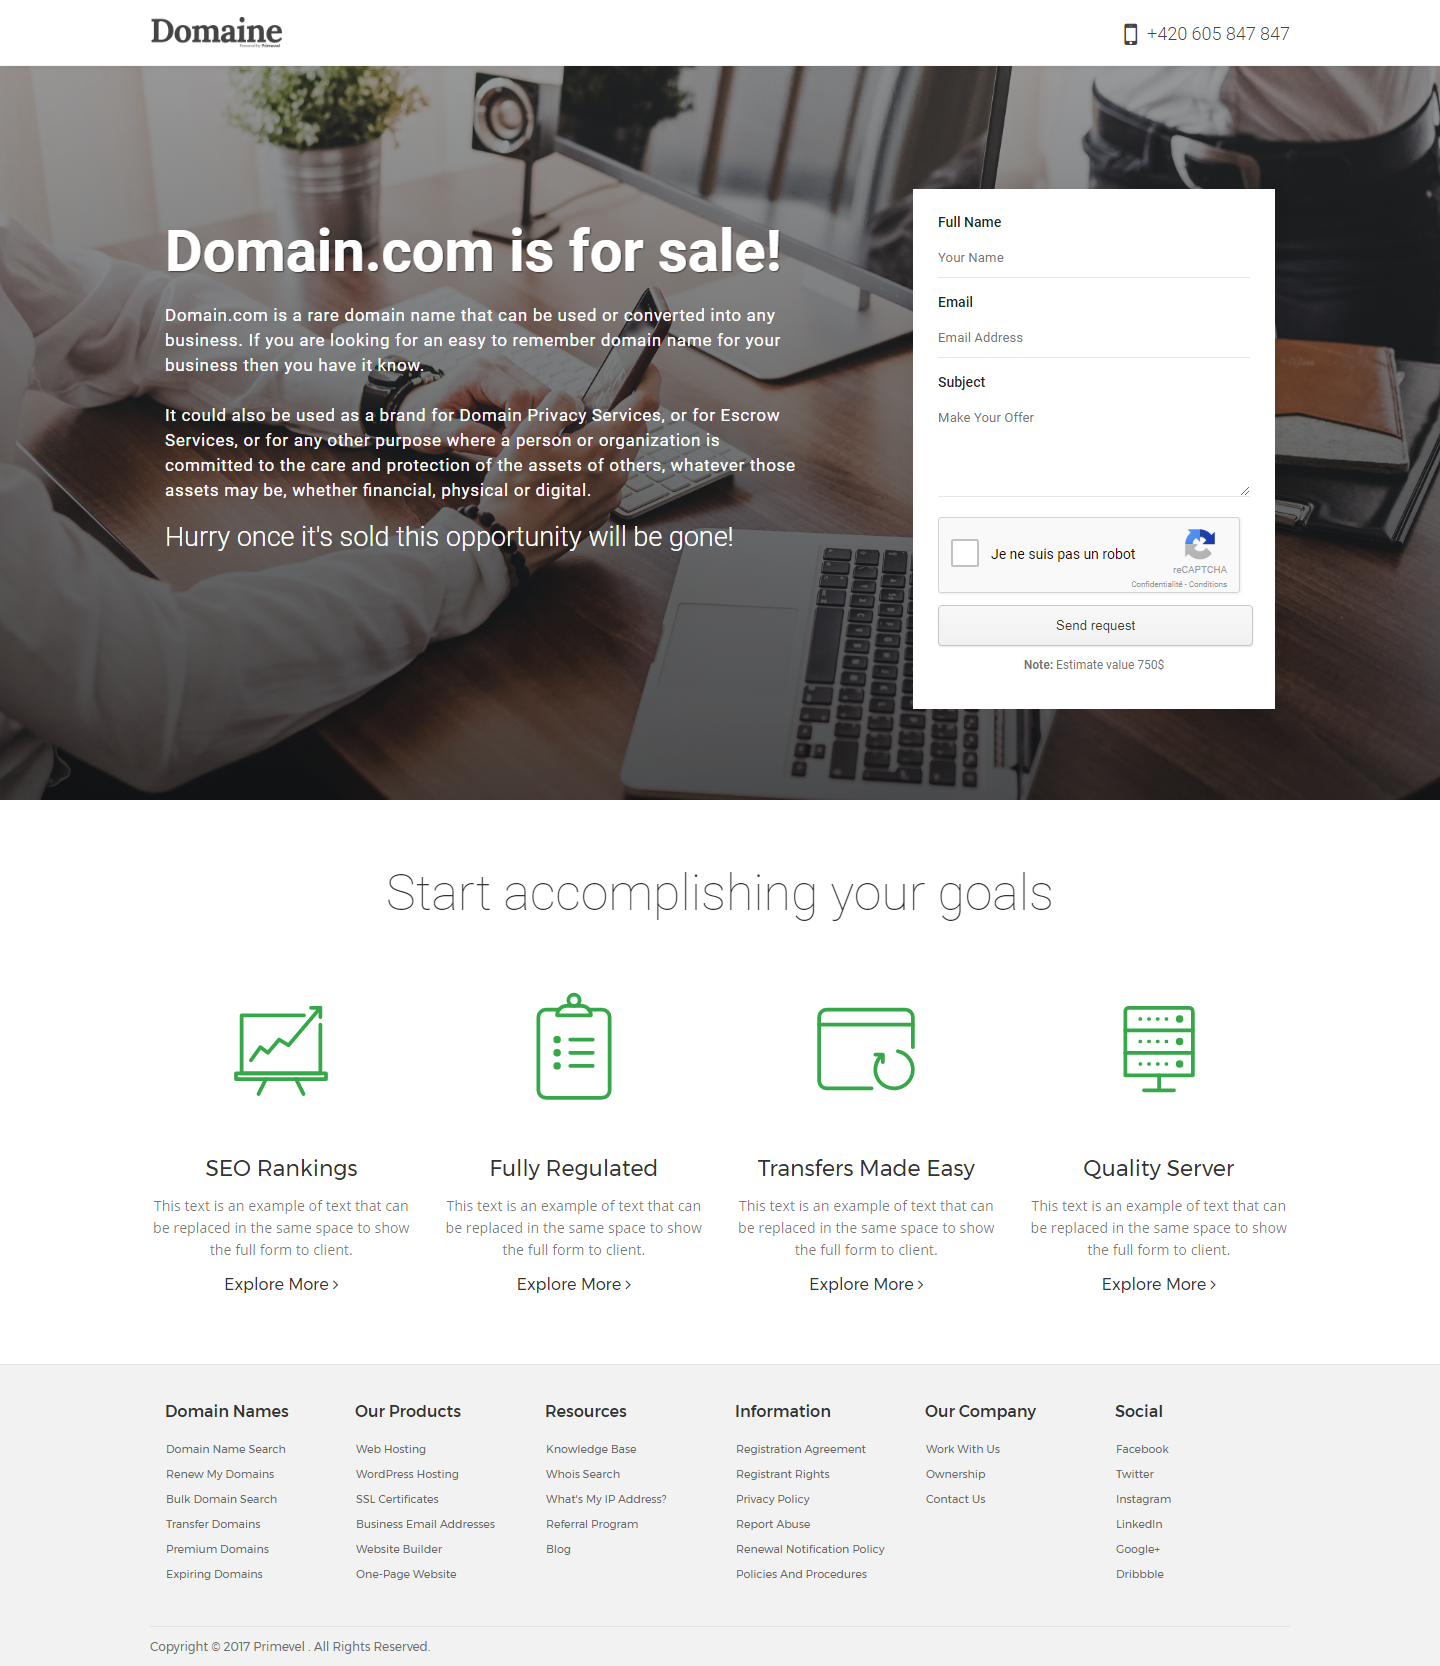 Domaine - Responsive Domain For Sale Template by Primevel   ThemeForest